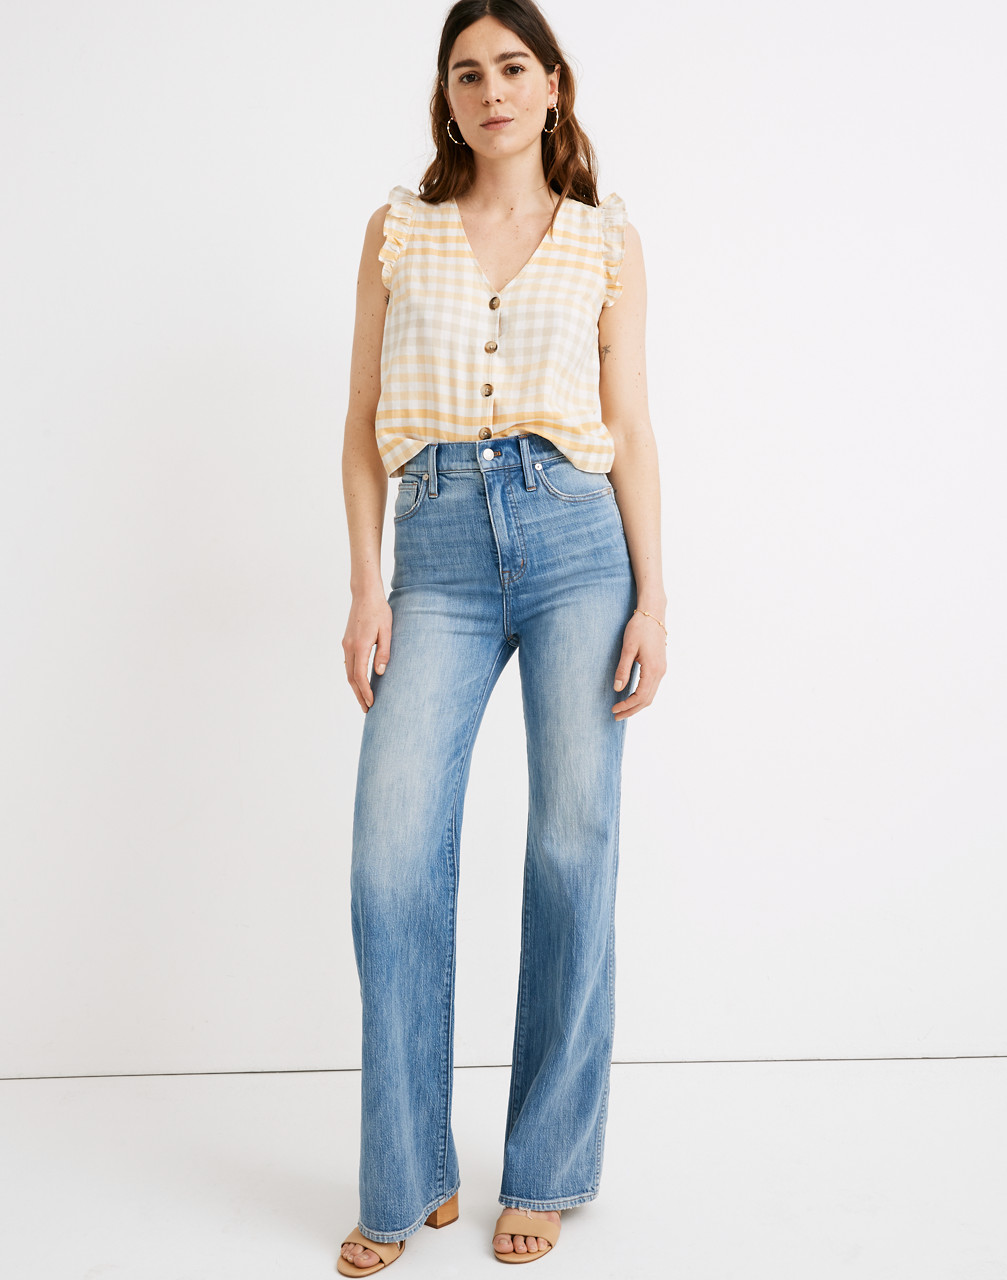 70s Outfits – 70s Style Ideas for Women 11 High-Rise Flare Jeans in Arbordale Wash $75.99 AT vintagedancer.com